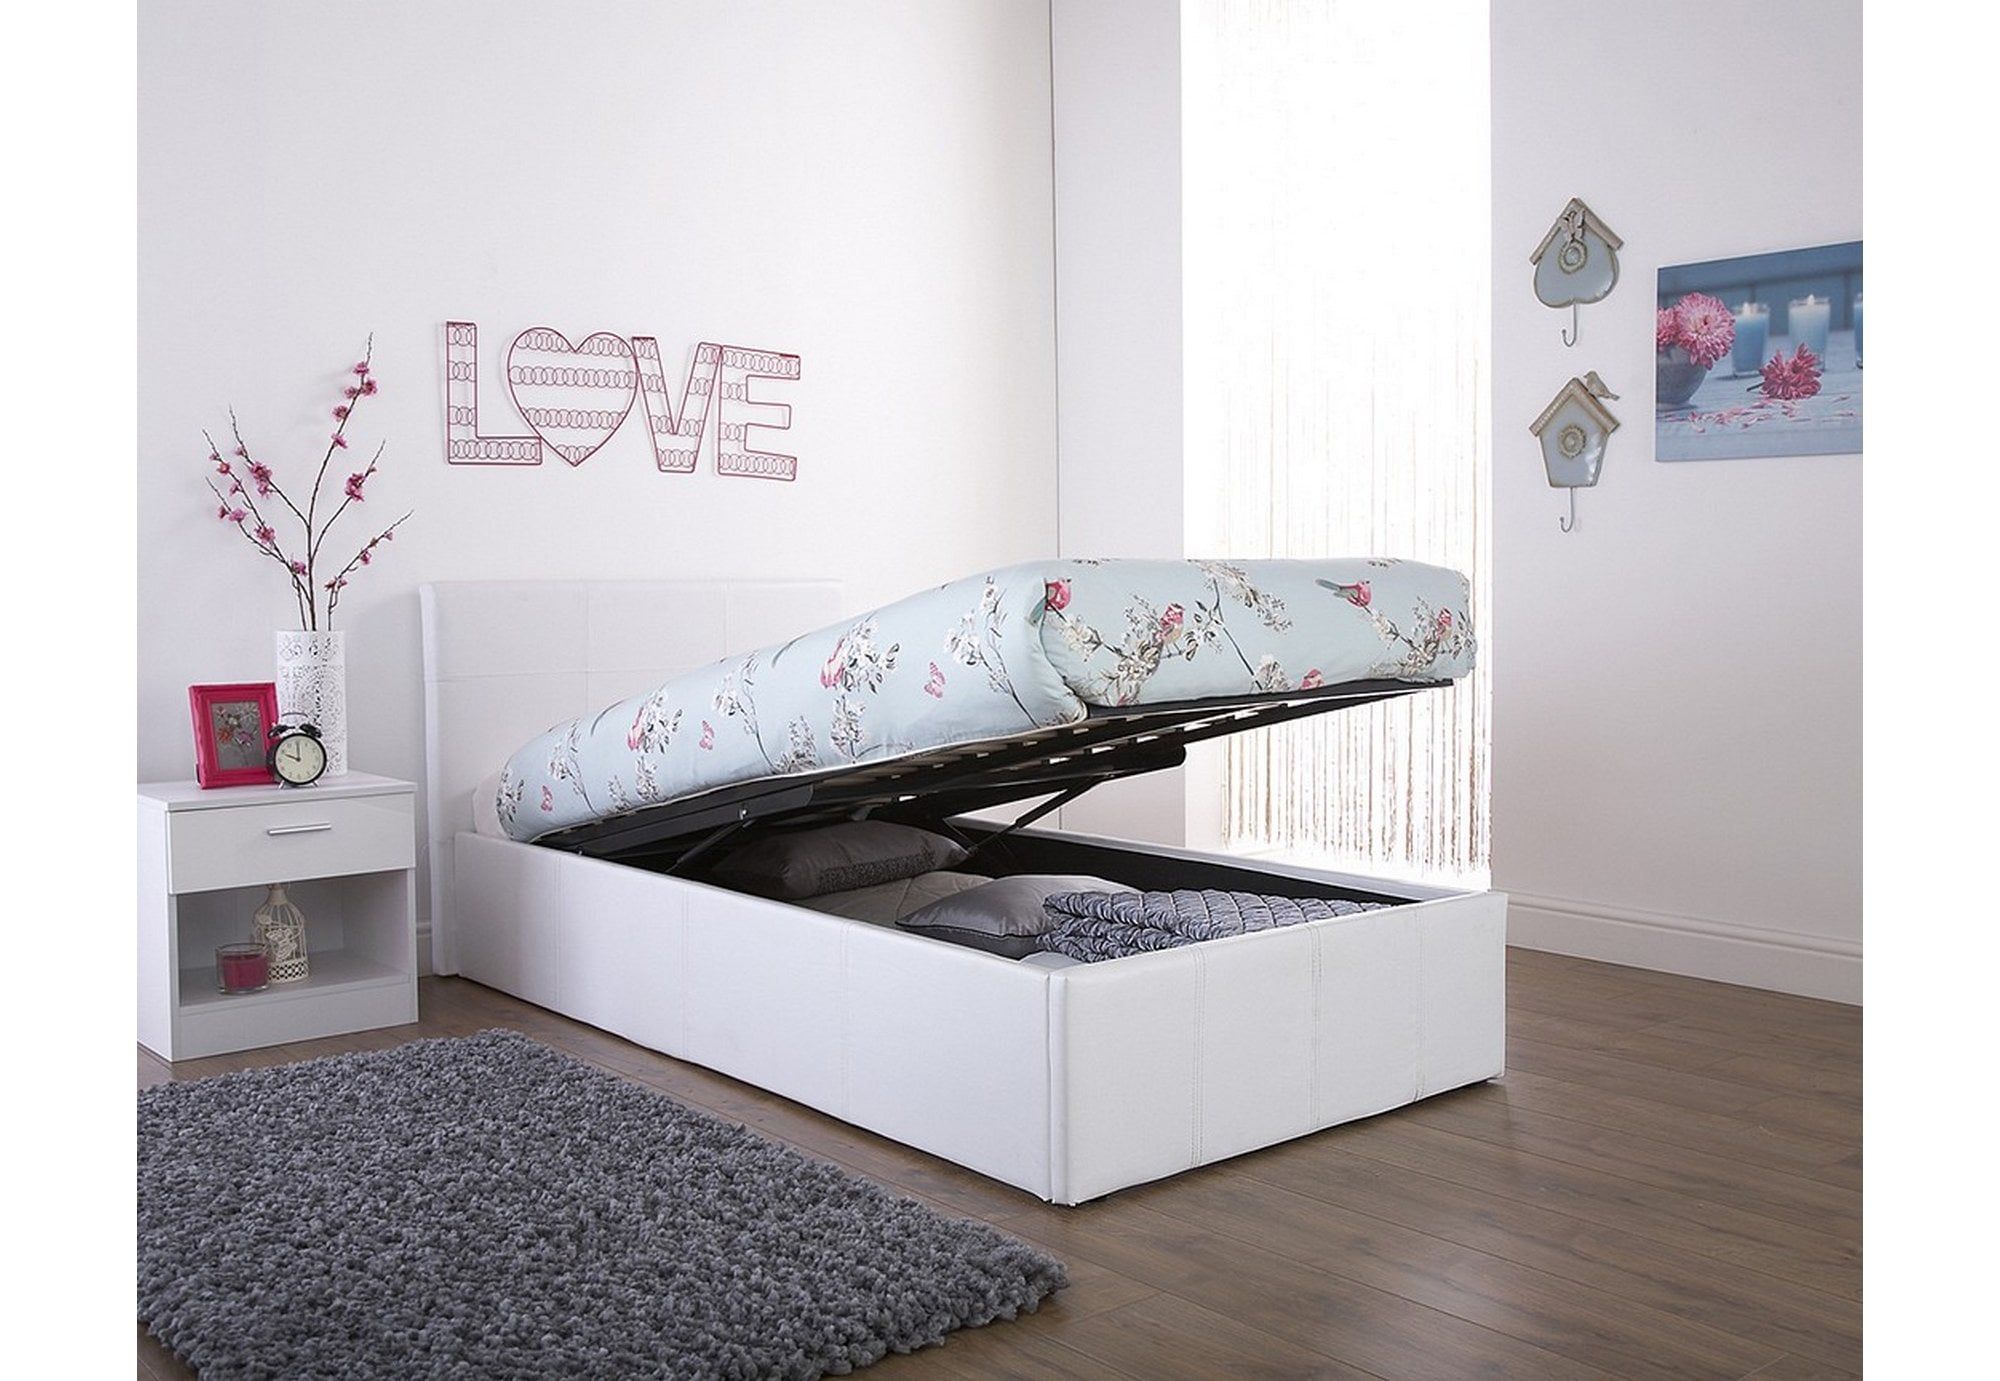 Picture of: Gfw Furniture End Lift Ottoman Single 90cm White Beds From Beds 4 Less Uk